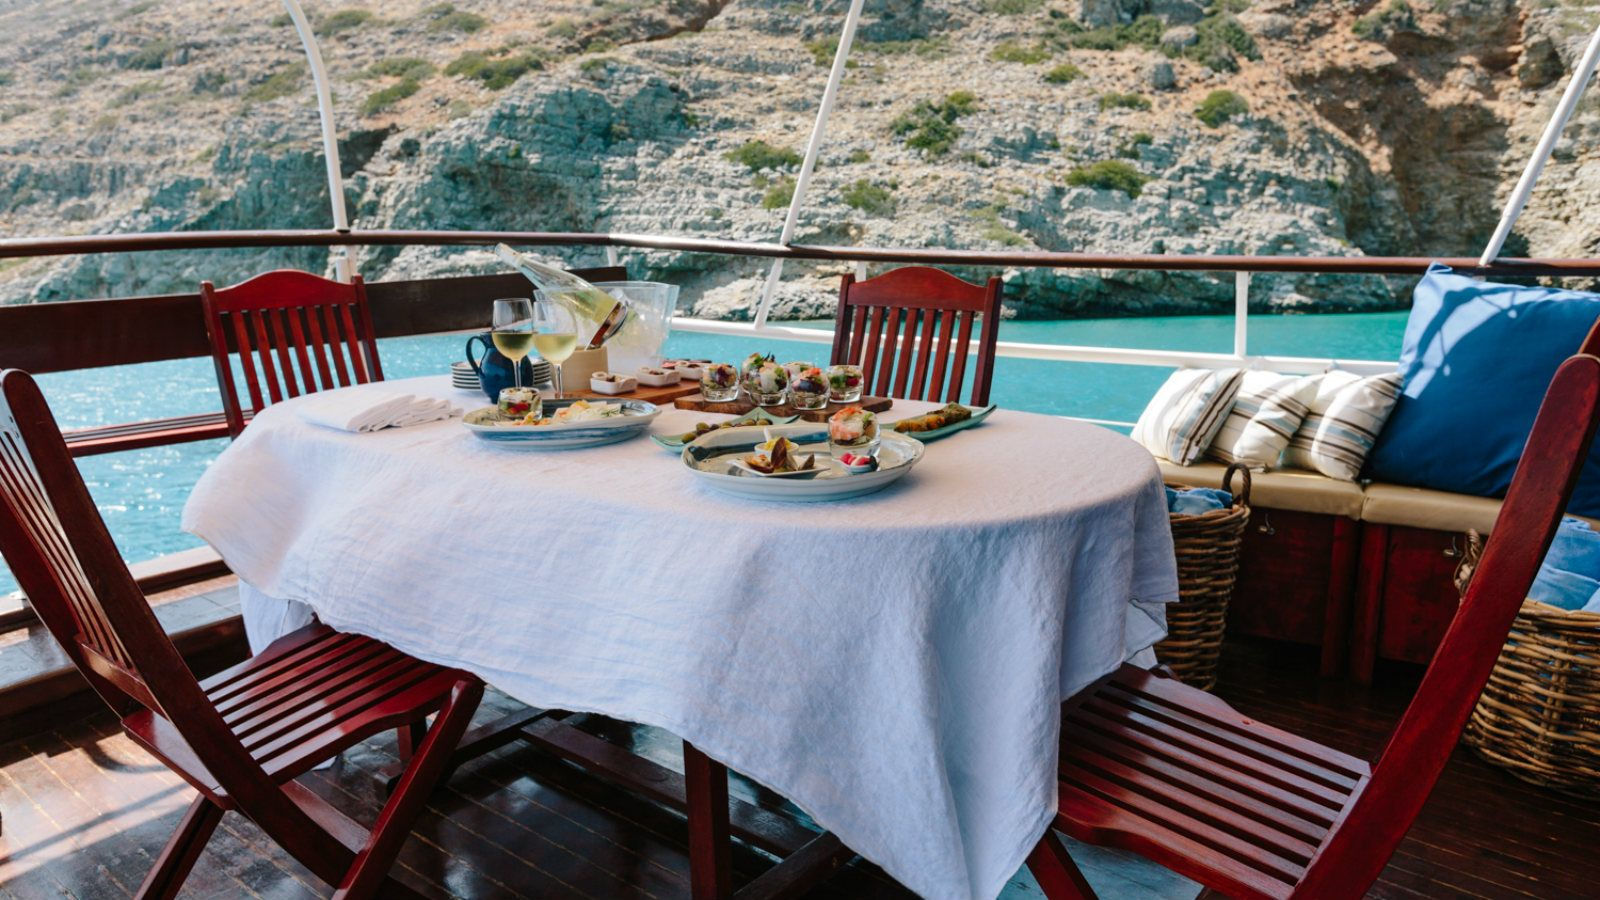 Boat trip spinalonga elounda crete greece Blue Palace Hotel